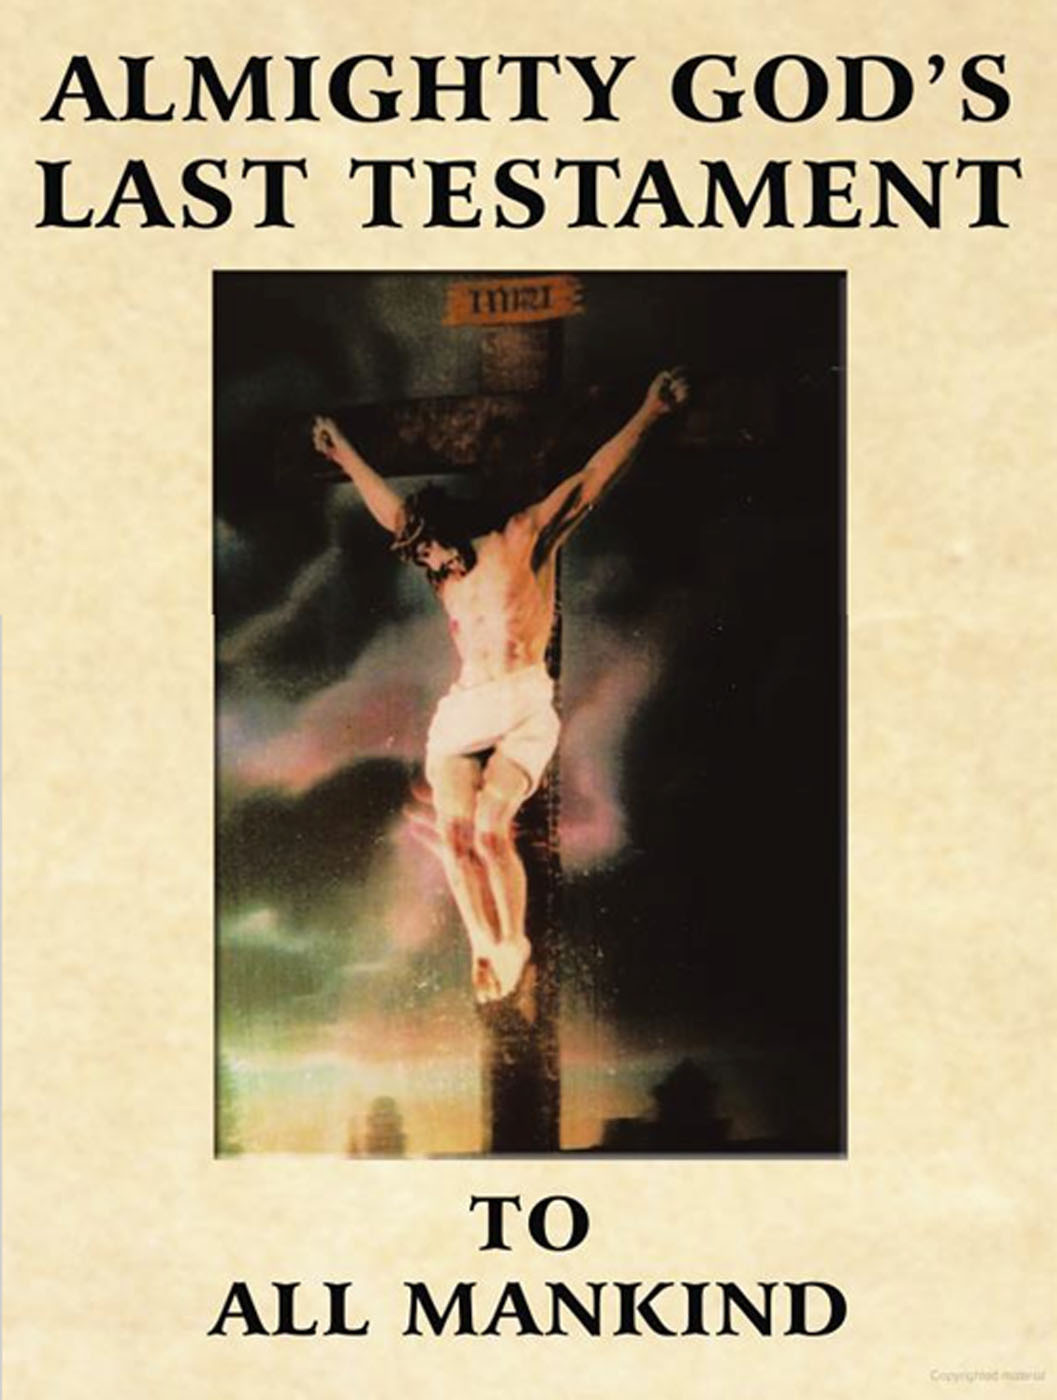 Archway Publishing Releases 'Almighty God's Last Testament To All Mankind'